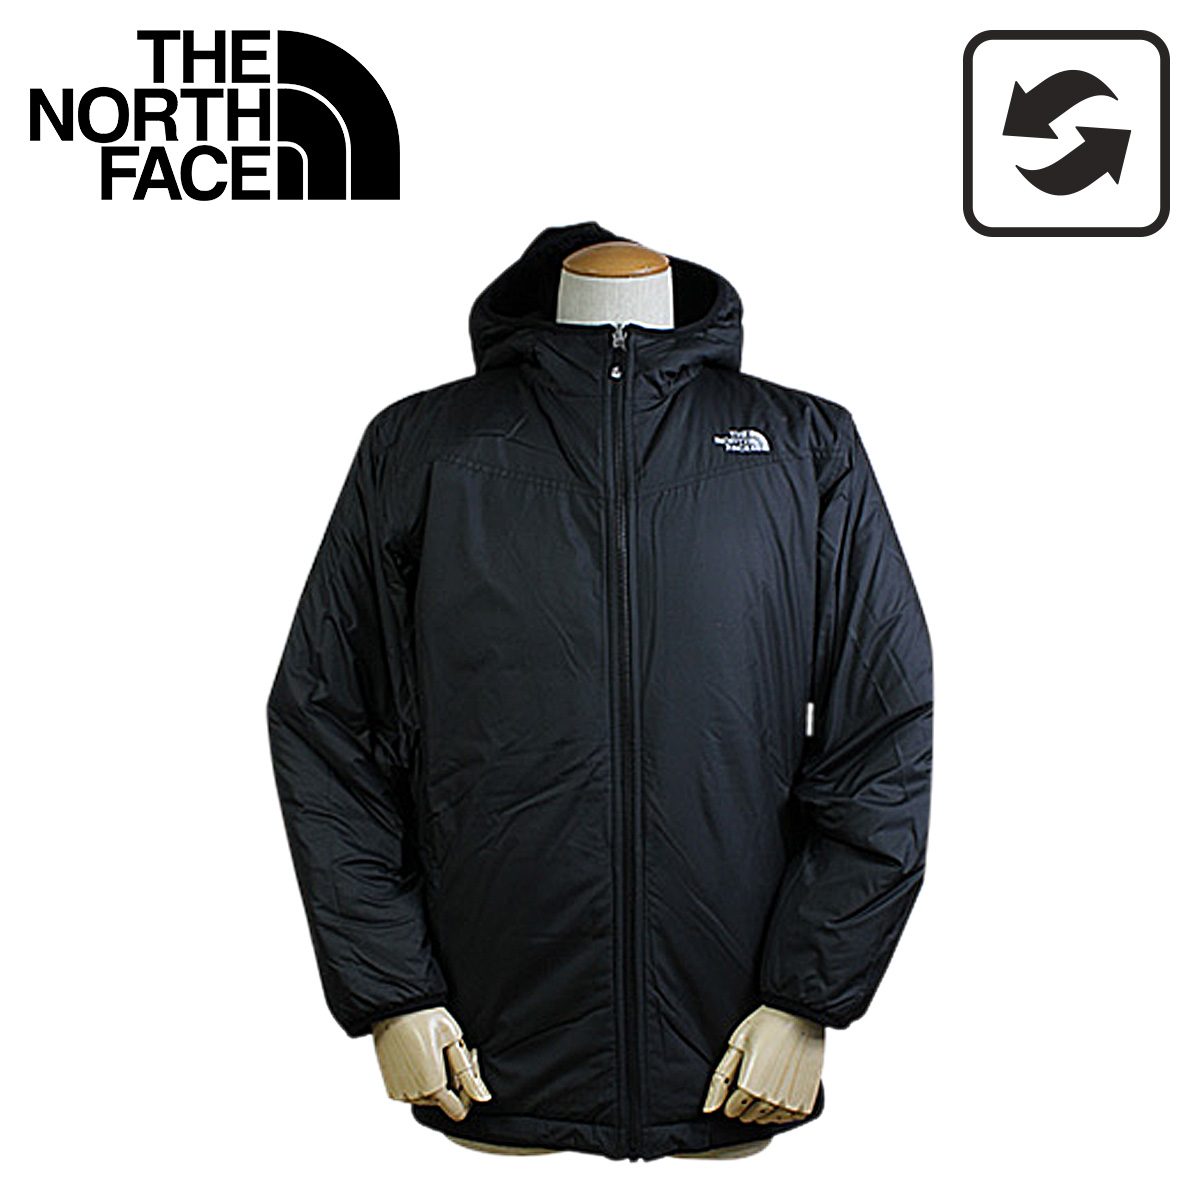 6224a4b591  SOLD OUT  the north face THE NORTH FACE kids   reversible fleece jacket  black A0B9 BOYS   REVERSIBLE TRUE OR FALSE JACKET men s women s